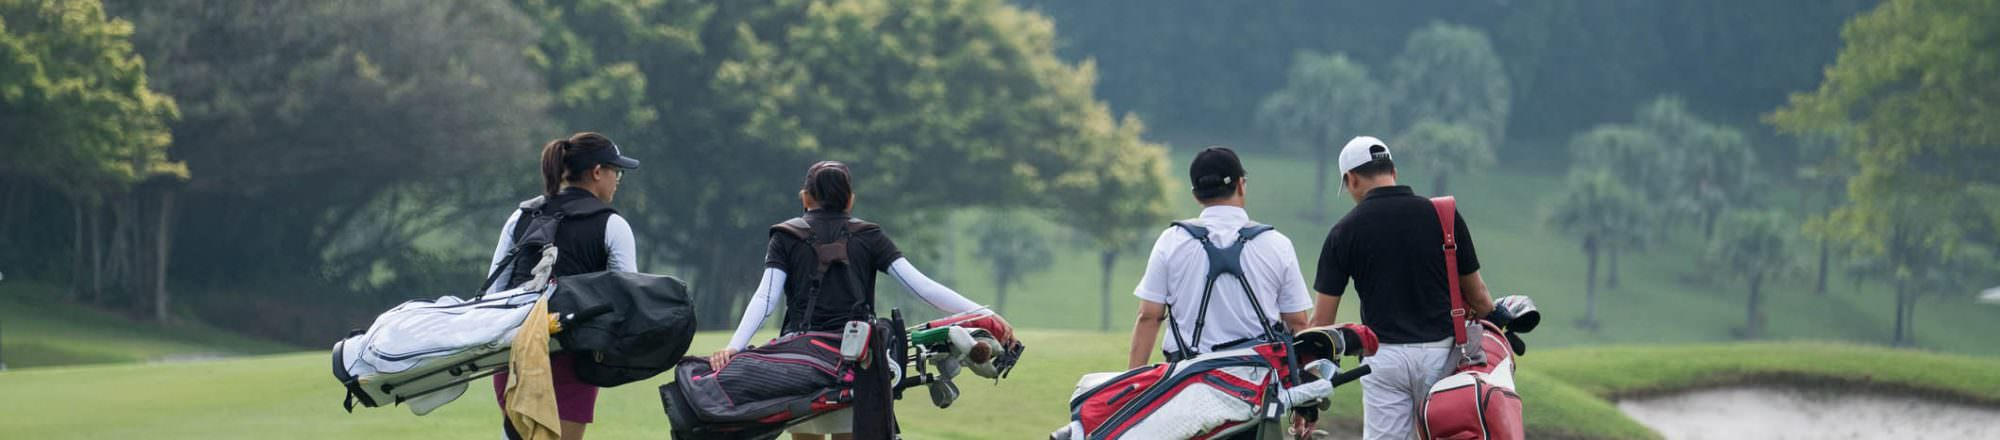 Can we play golf in fourballs when golf courses reopen?